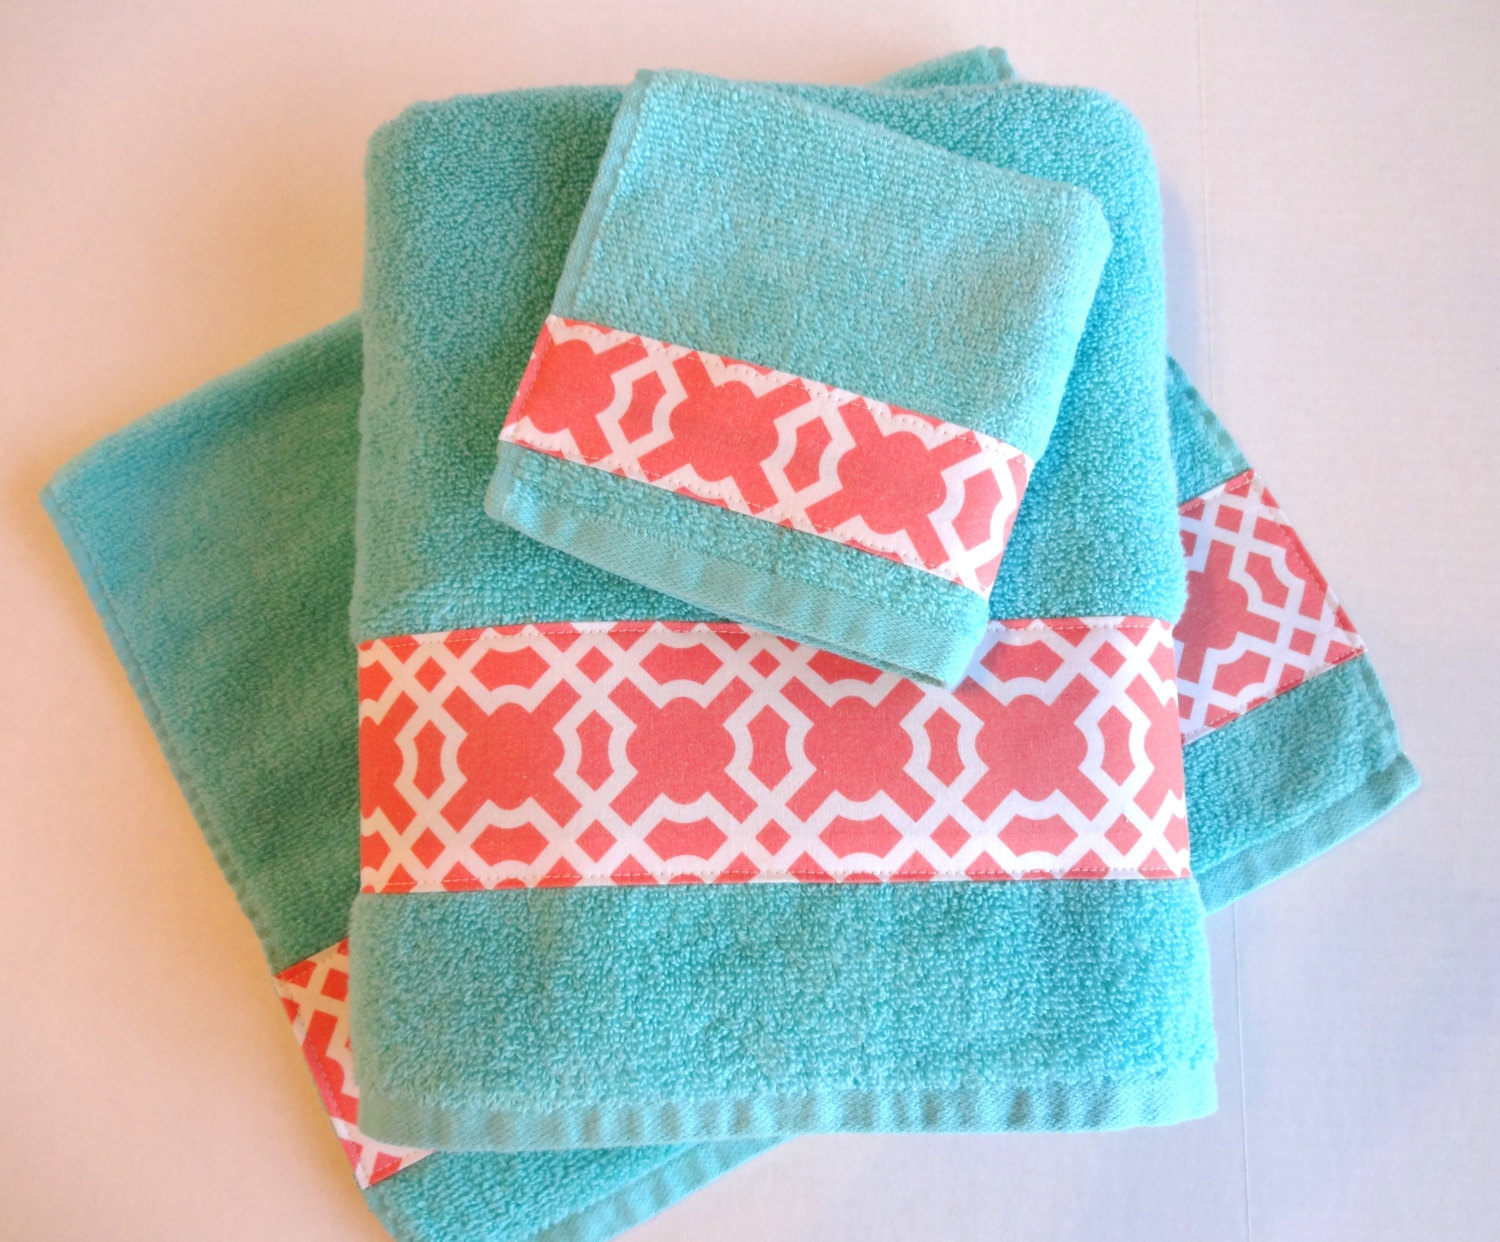 Permalink to Turquoise Bathroom Rugs And Towels